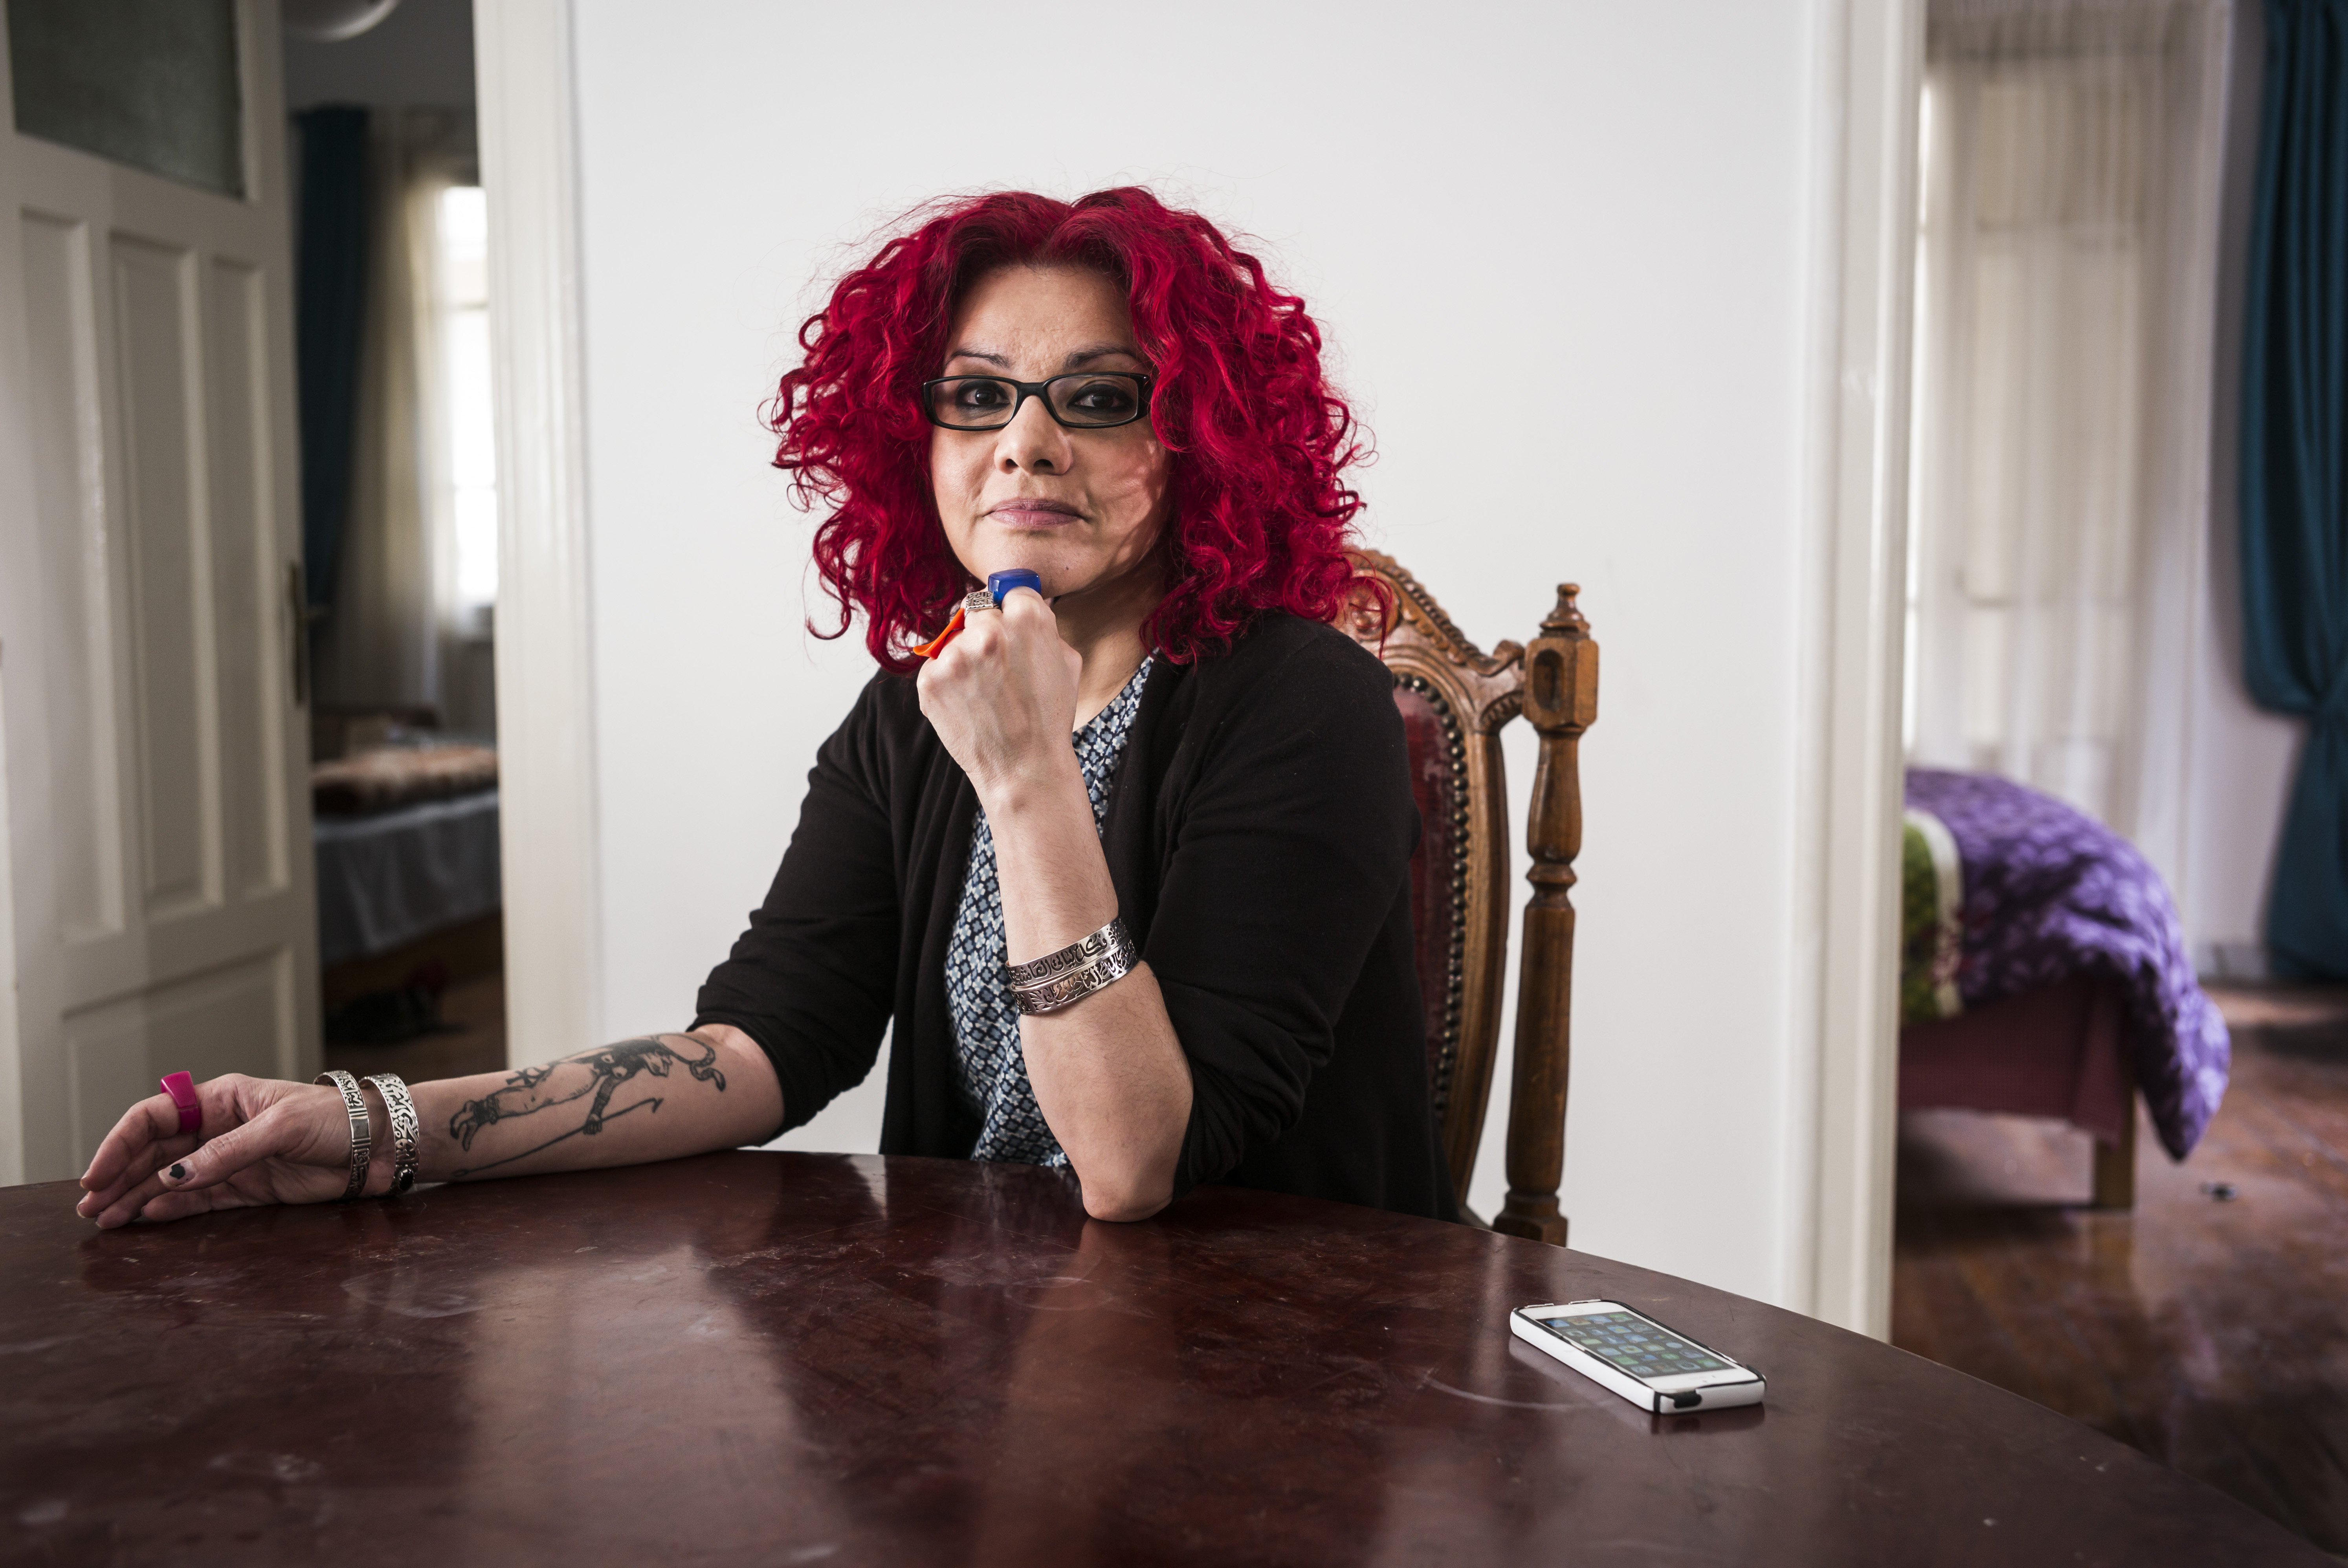 Mona Eltahawy is photographed in her home on April 12, 2015 in Cairo, Egypt.